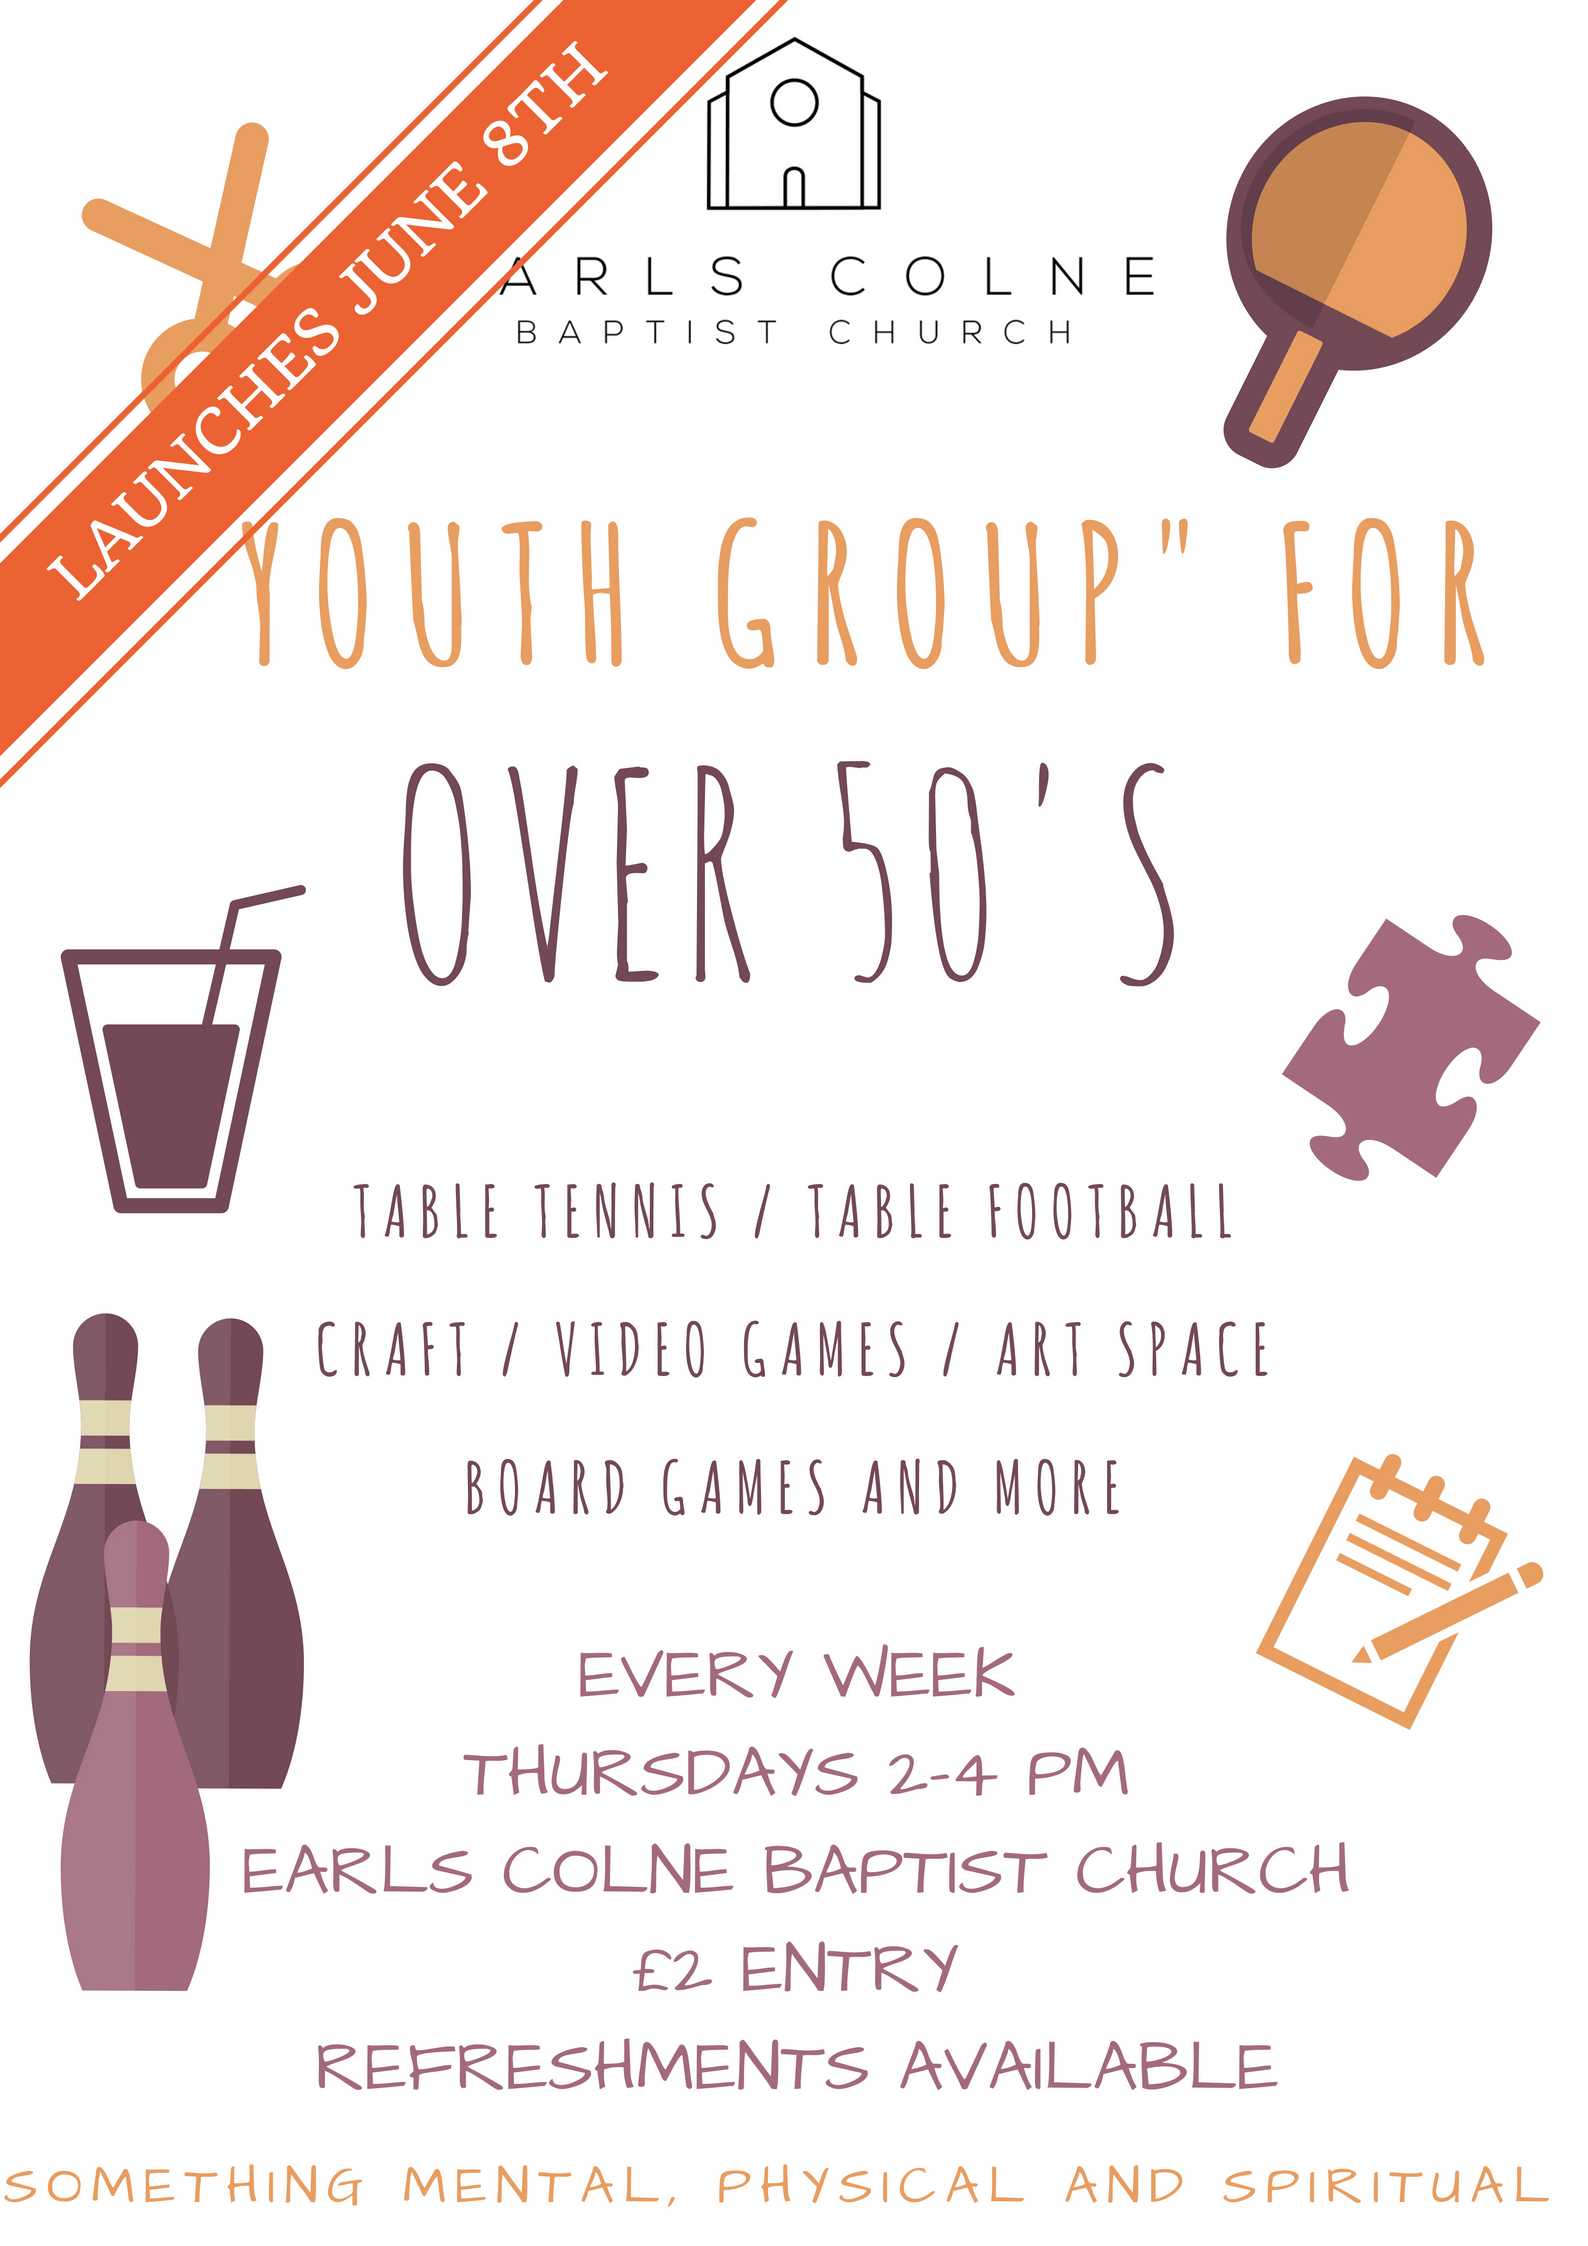 The 50+ Youth Group is launching!